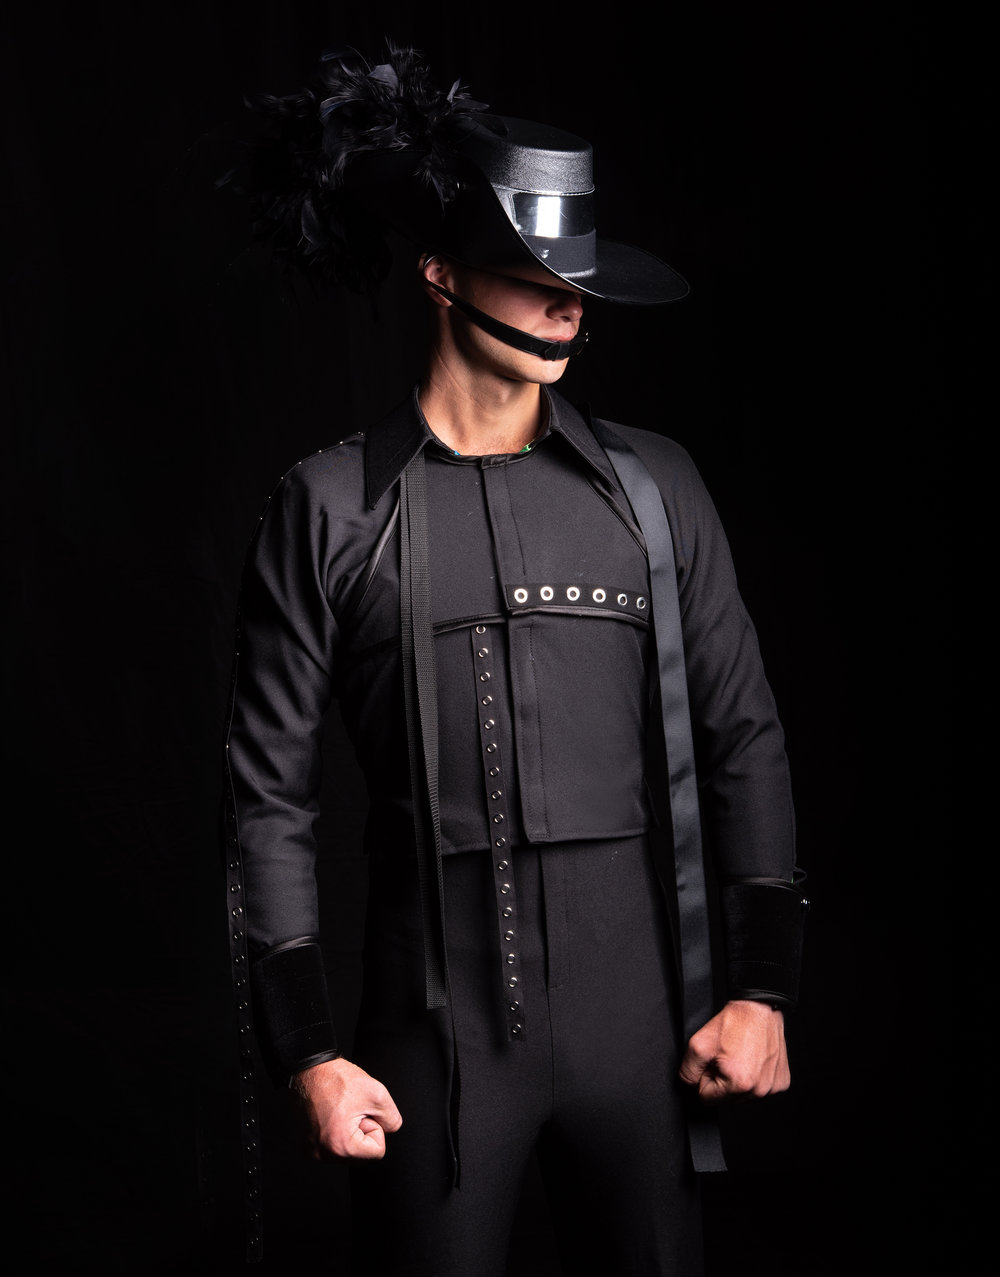 20180613 Cavaliers Uniform Reveal 006.JPG